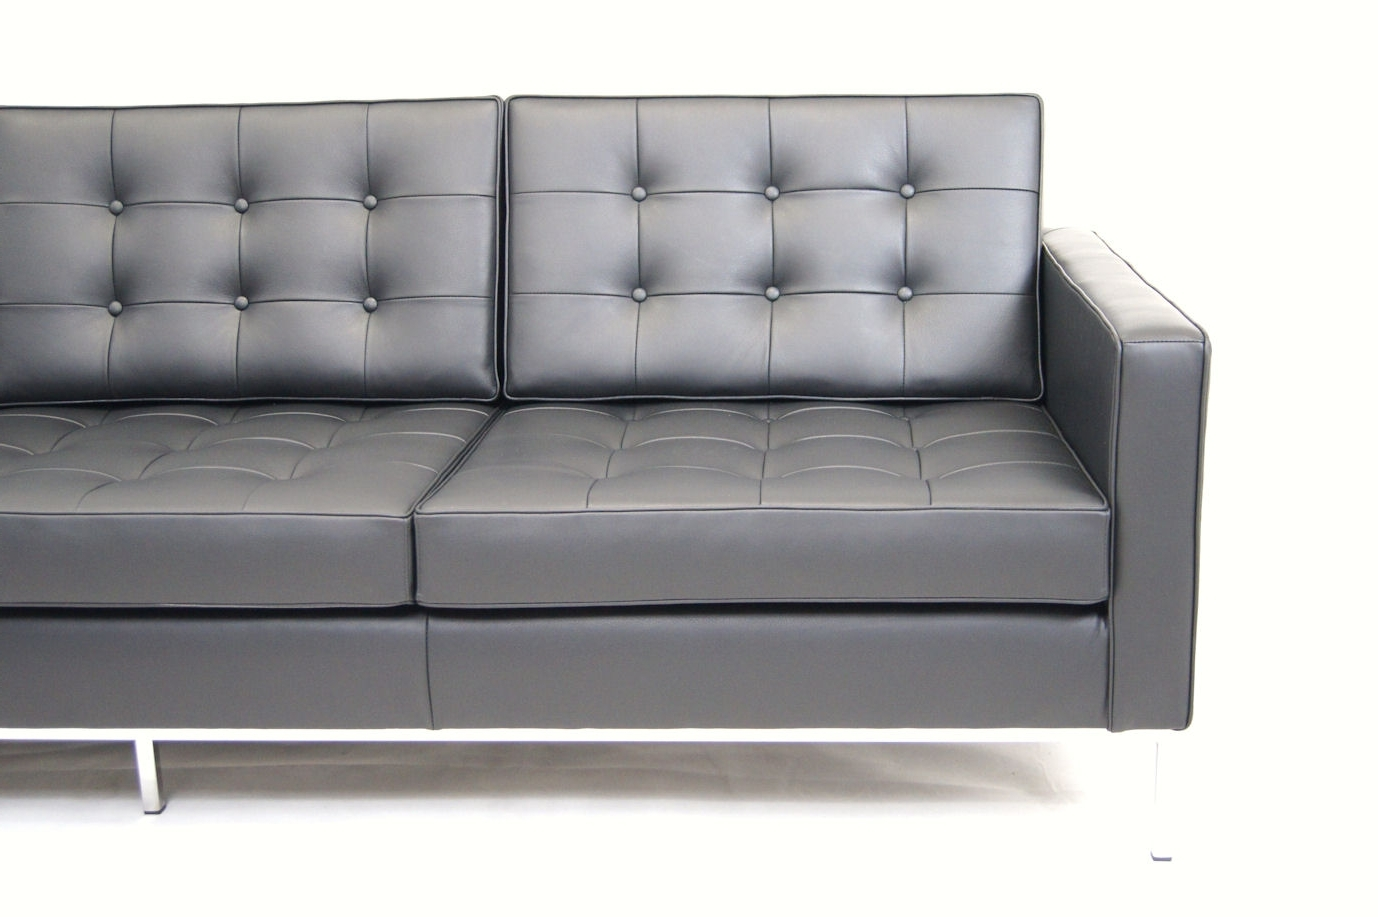 Florence Knoll Fabric Sofas Throughout Widely Used Florence Knoll Sofa Canada « House Plans Ideas (View 12 of 20)